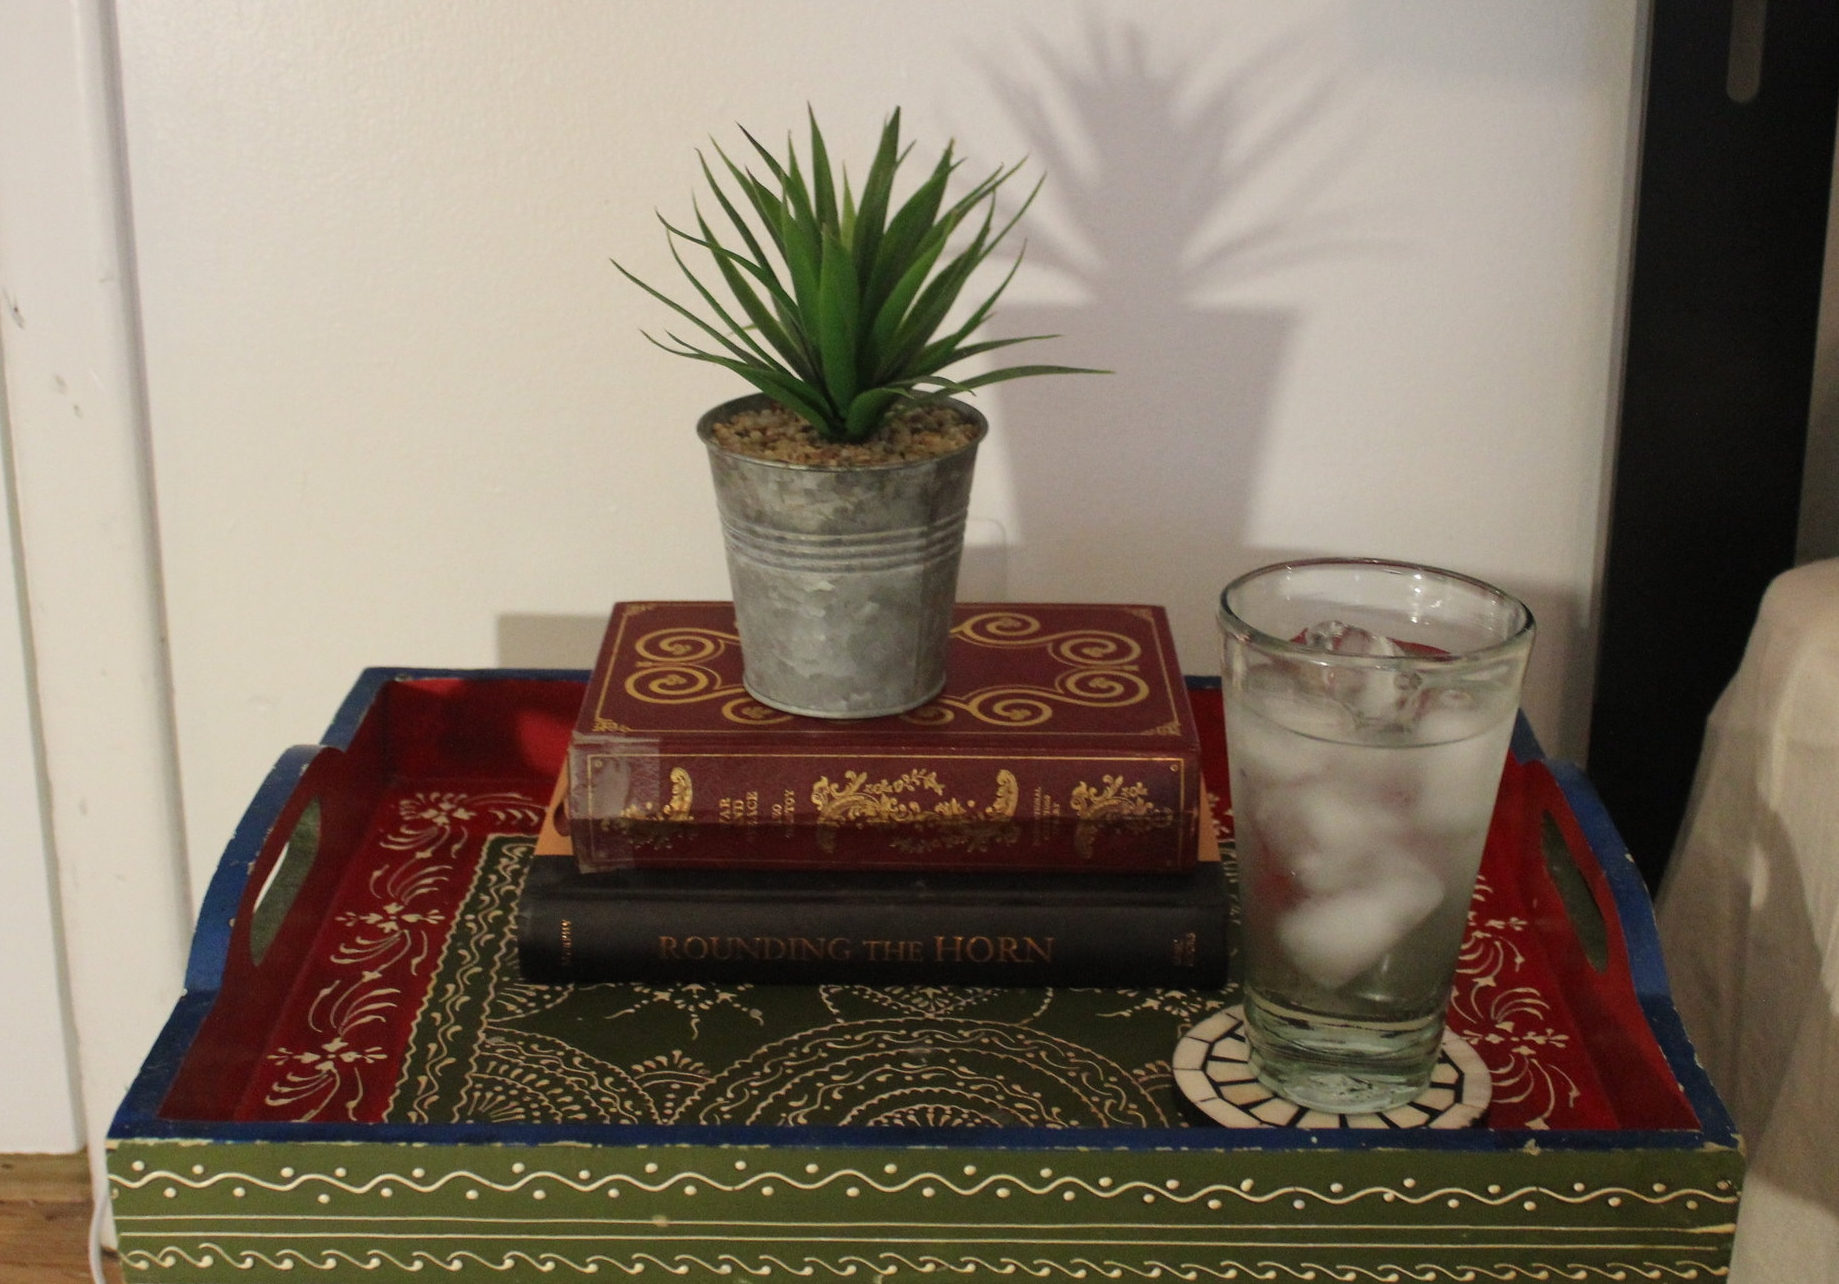 SUMMER - A small succulent on top of a stack of books and a glass of ice water on a bedside table will have you ready for the heat.